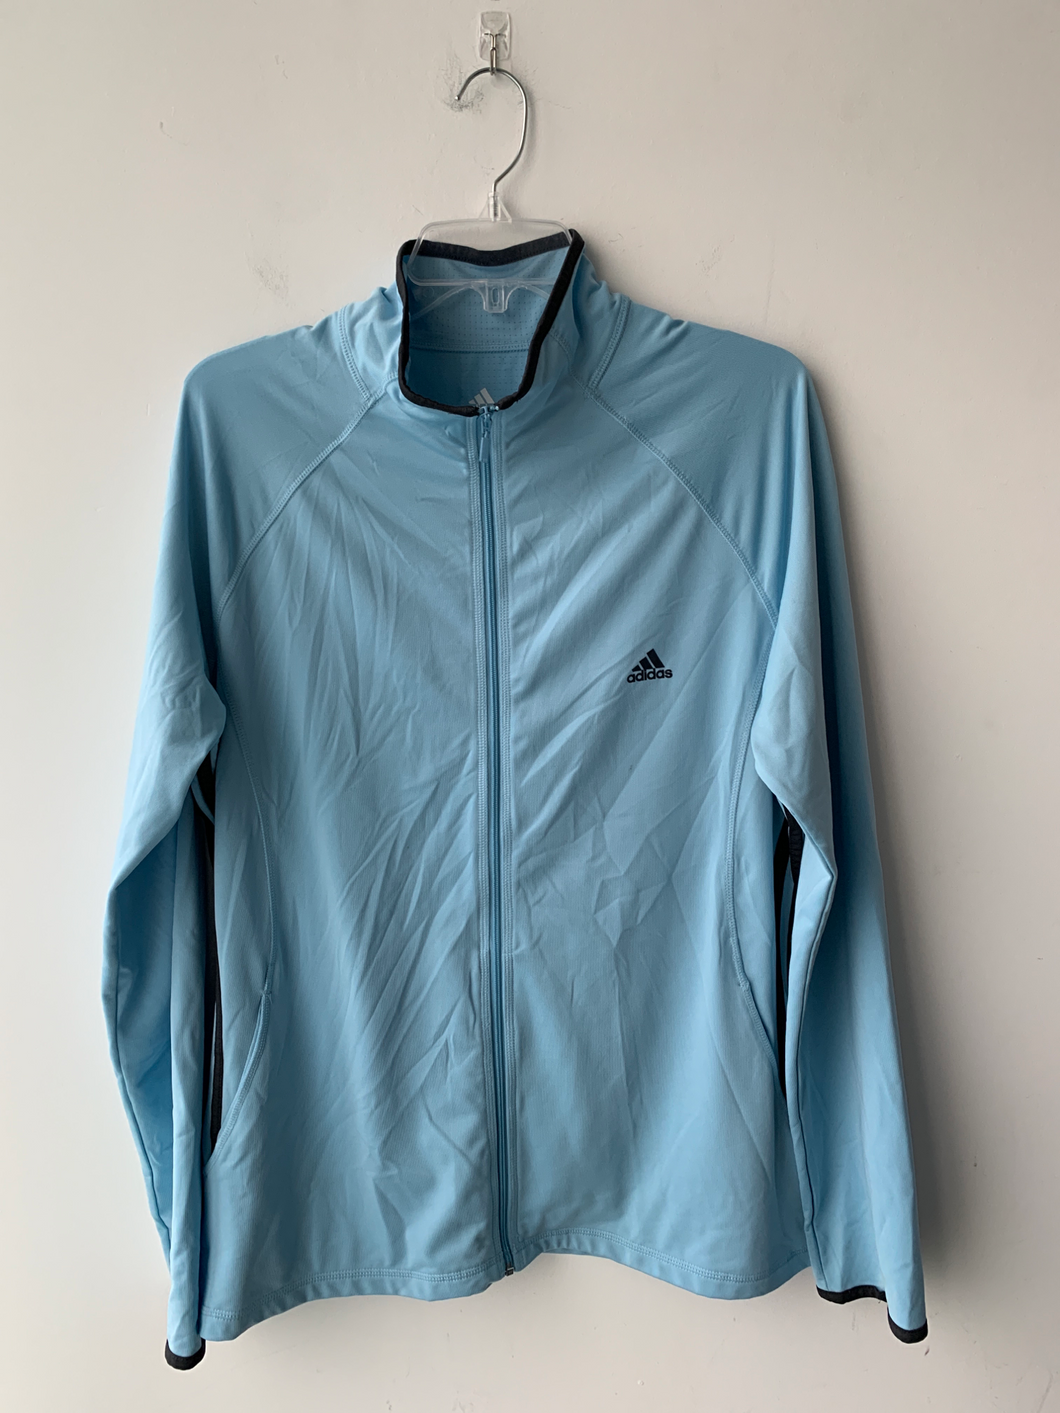 Adidas Athletic Jacket Size Extra Large